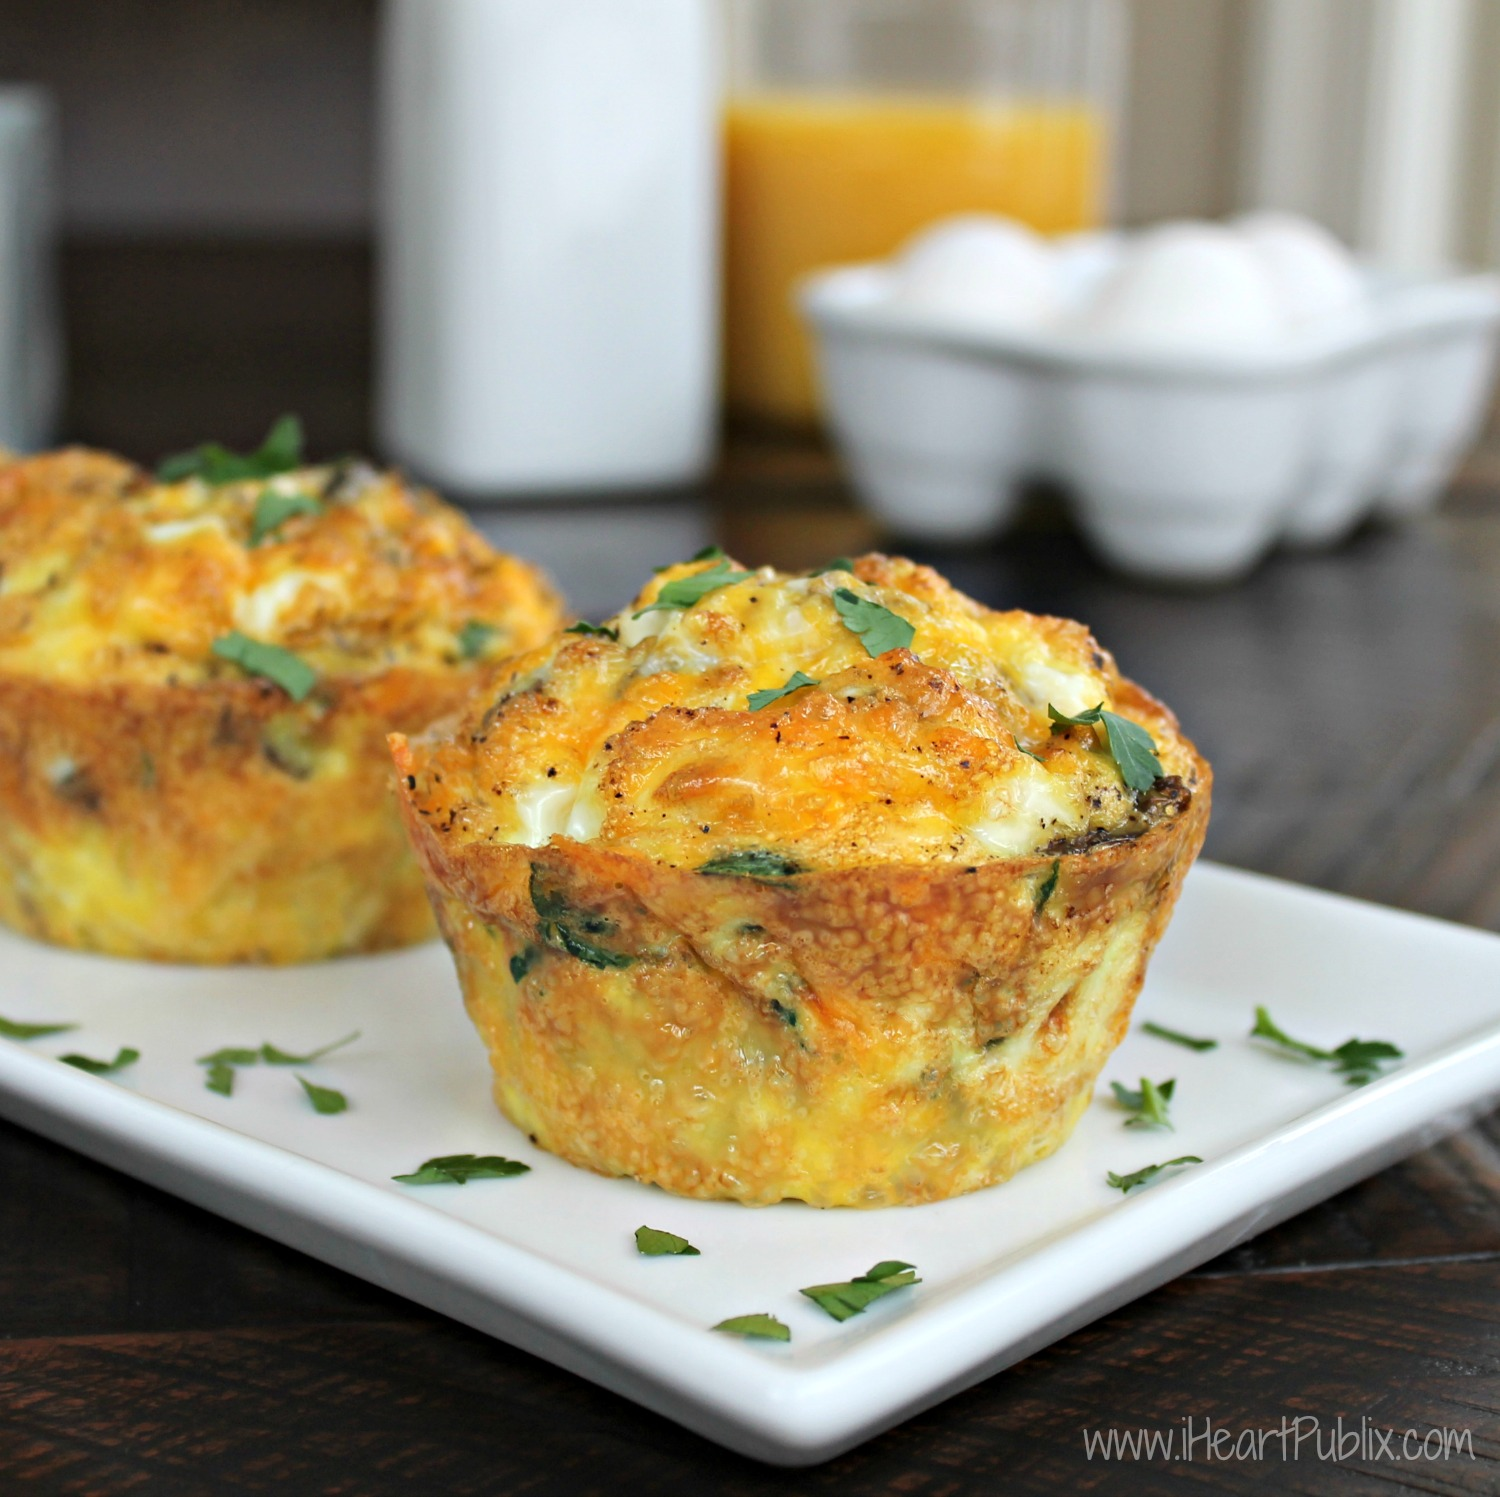 Egg Muffins with Sausage, Spinach & Mushrooms